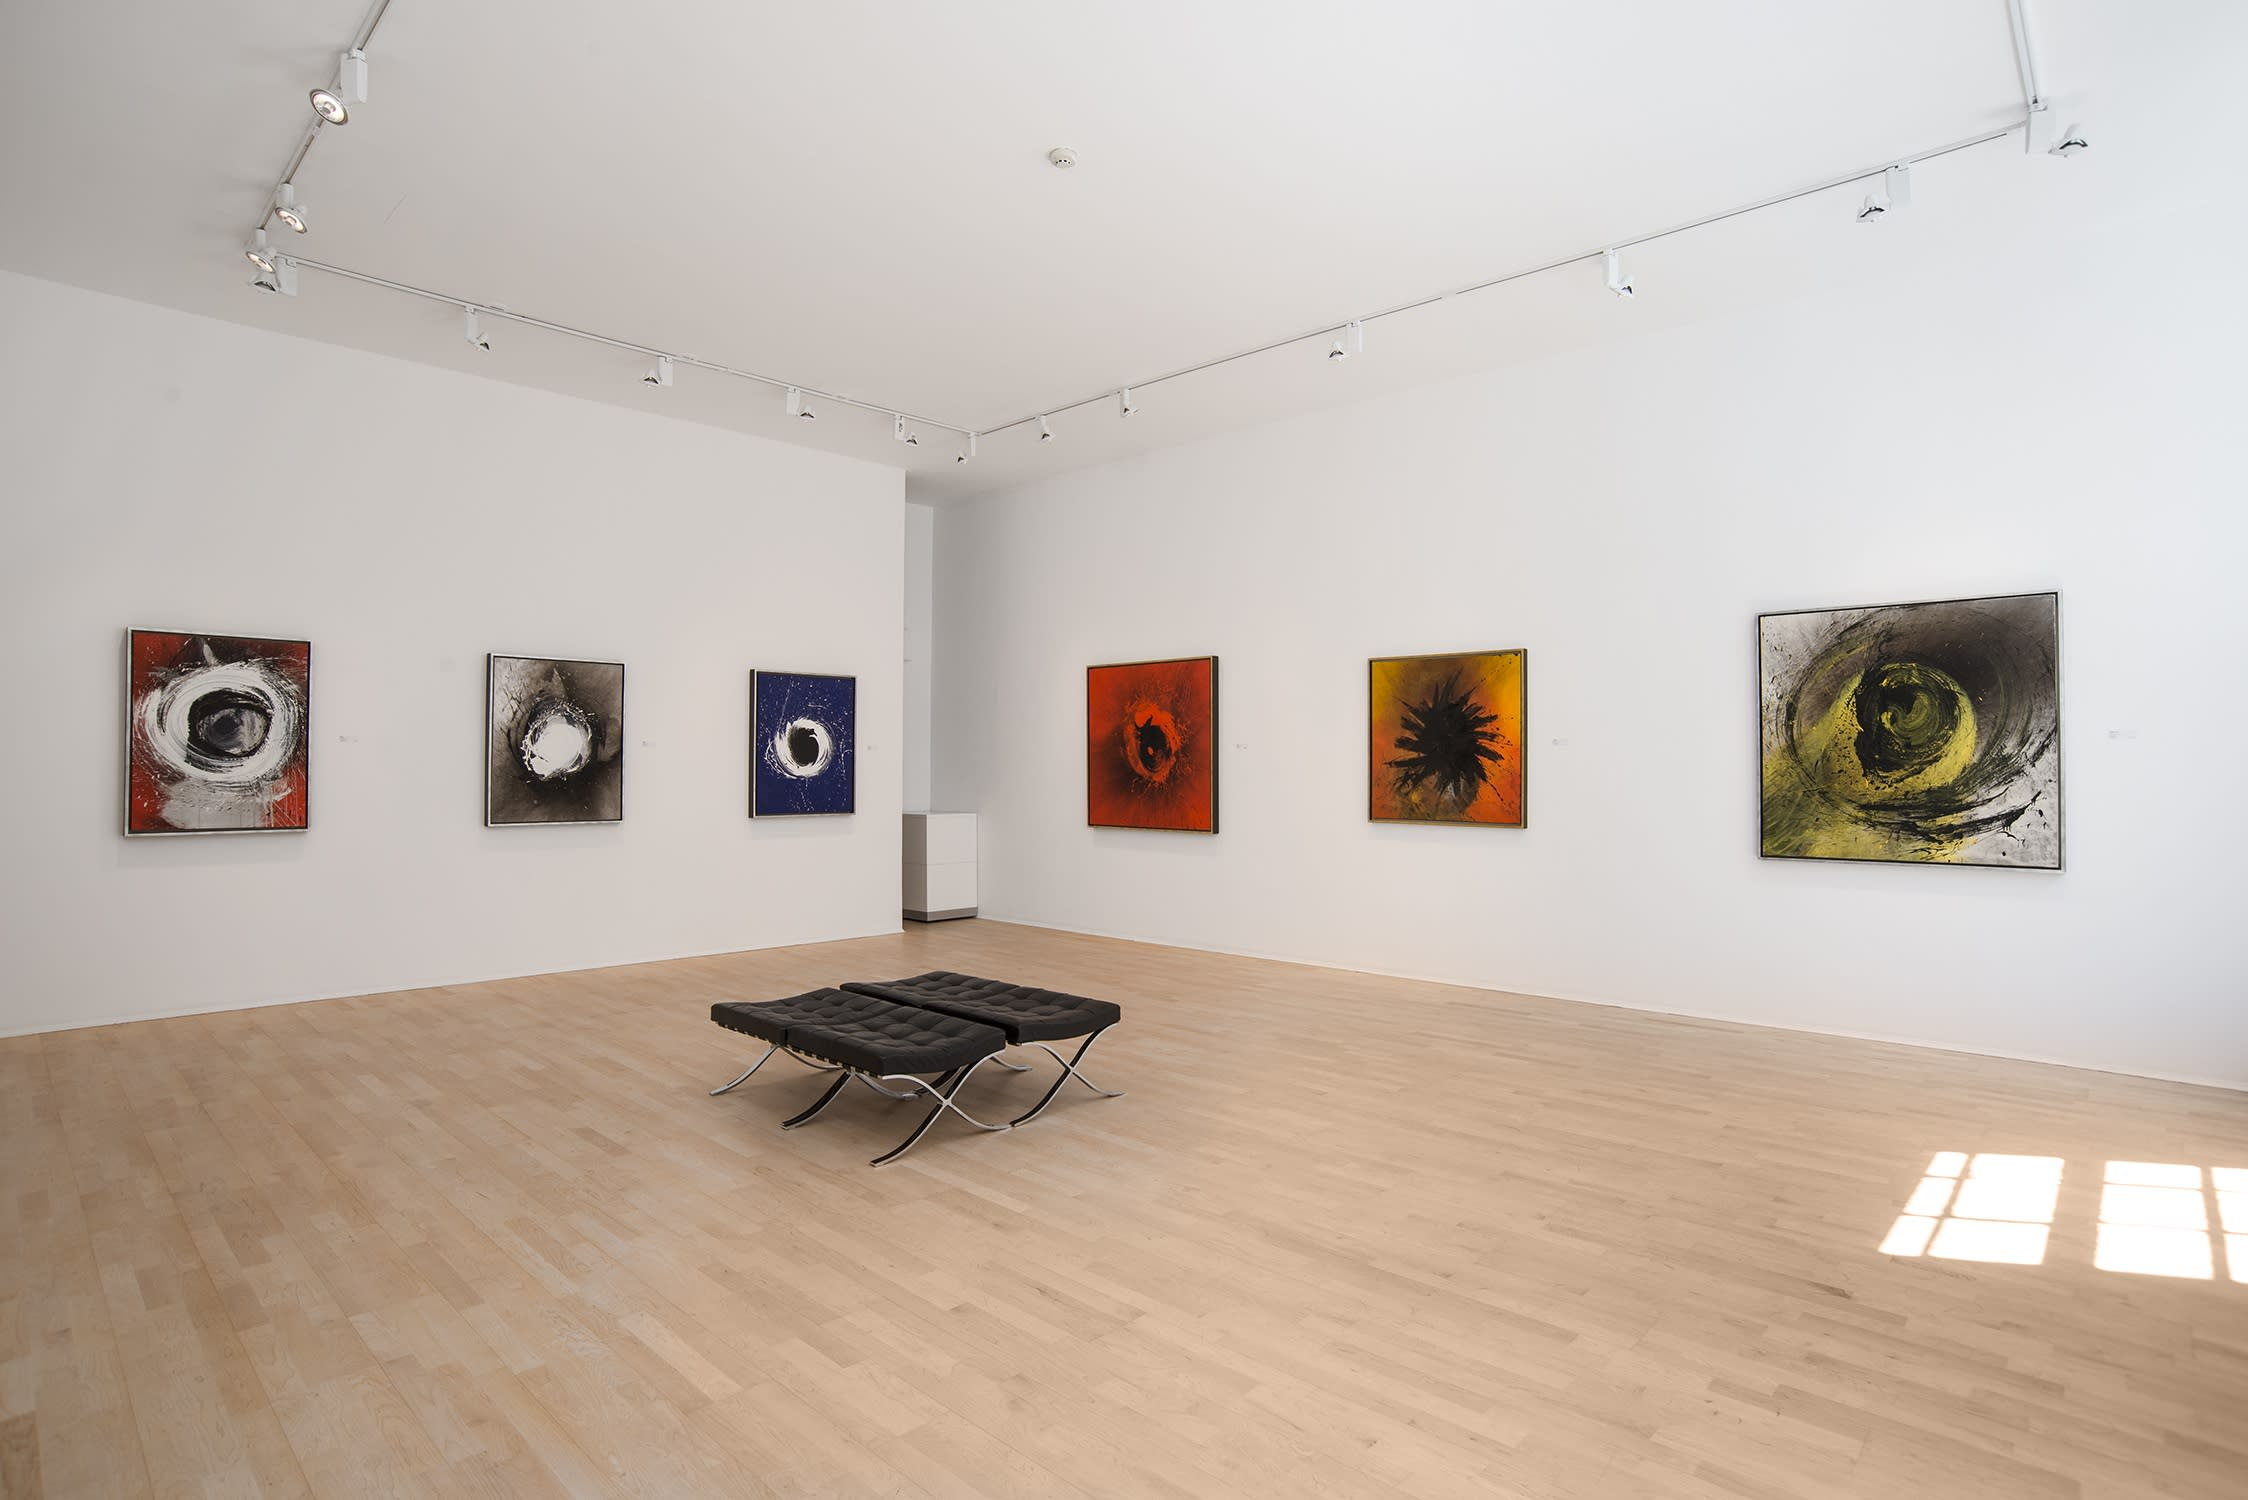 "<span class=""link fancybox-details-link""><a href=""/exhibitions/55/works/image_standalone55/"">View Detail Page</a></span><p>OTTO PIENE 